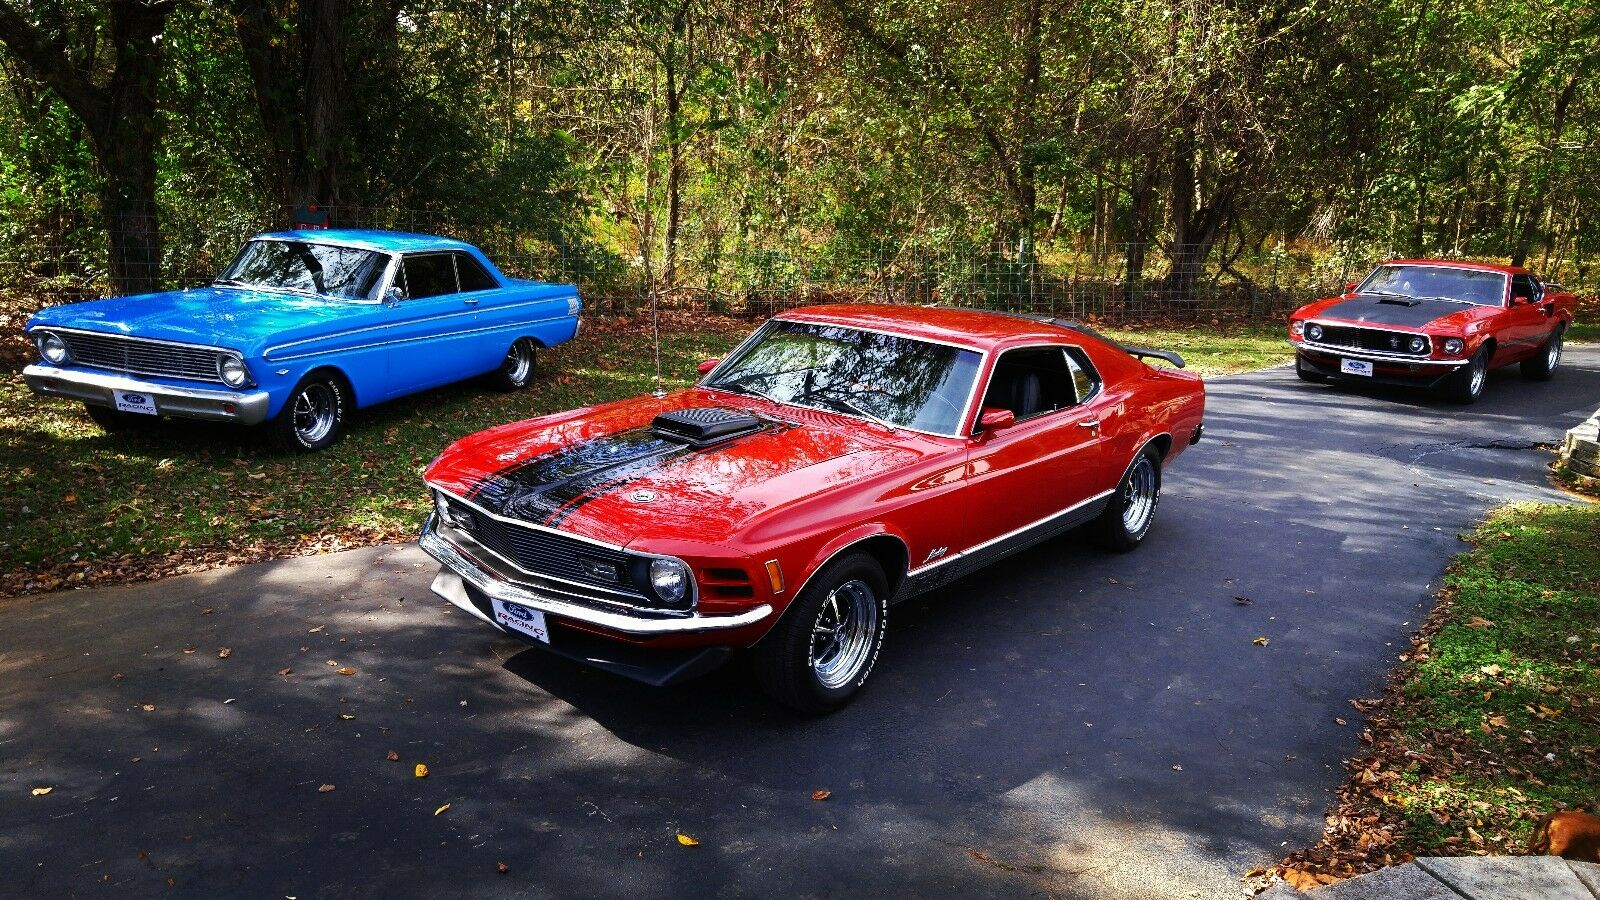 1970 Mustang Mach 1 Fastback